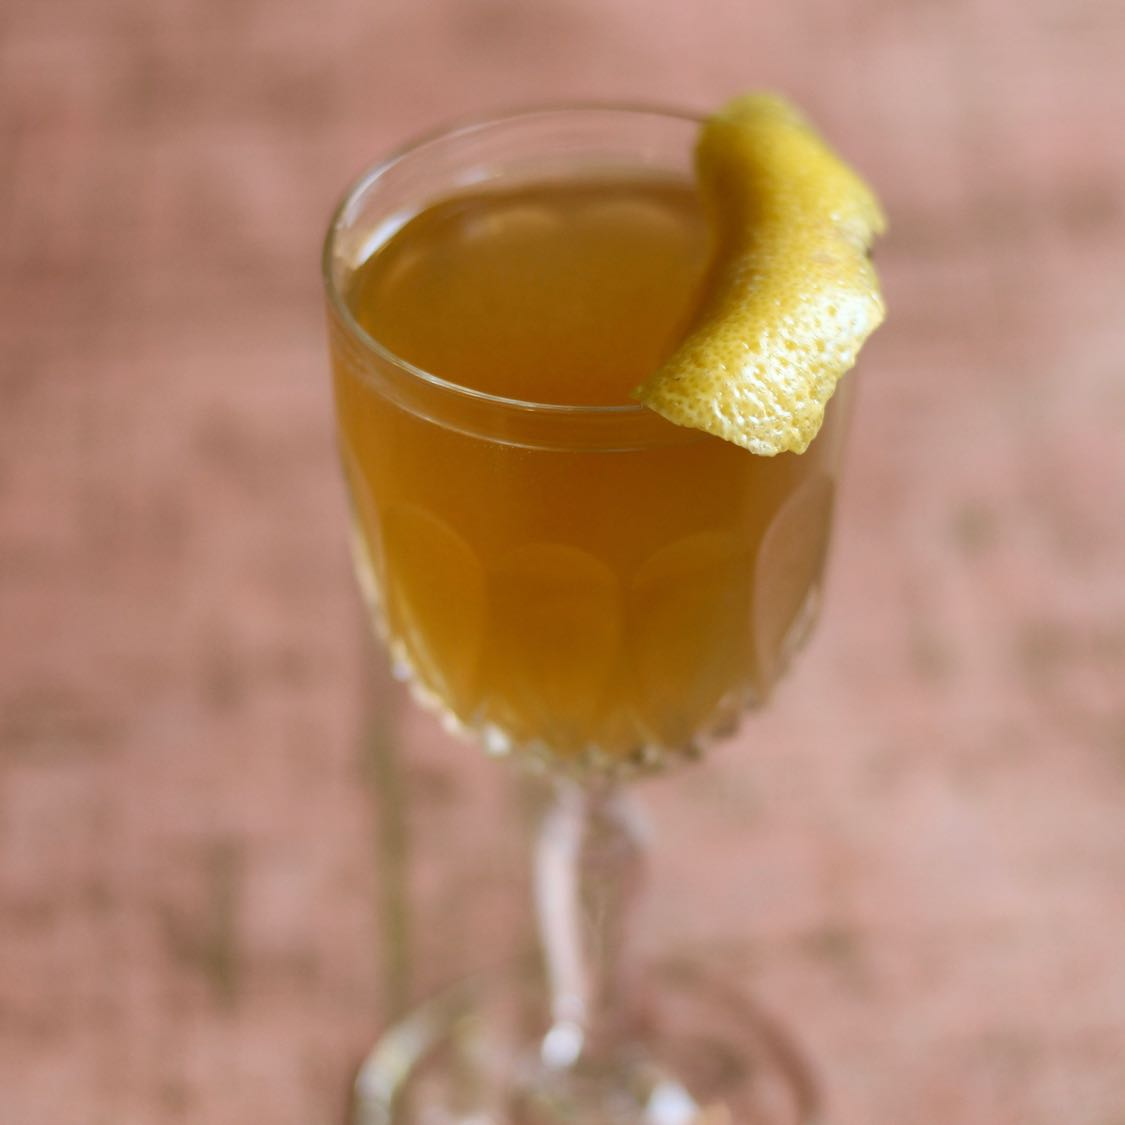 Frisco Sour Cocktail - An Herbal Whiskey Sour